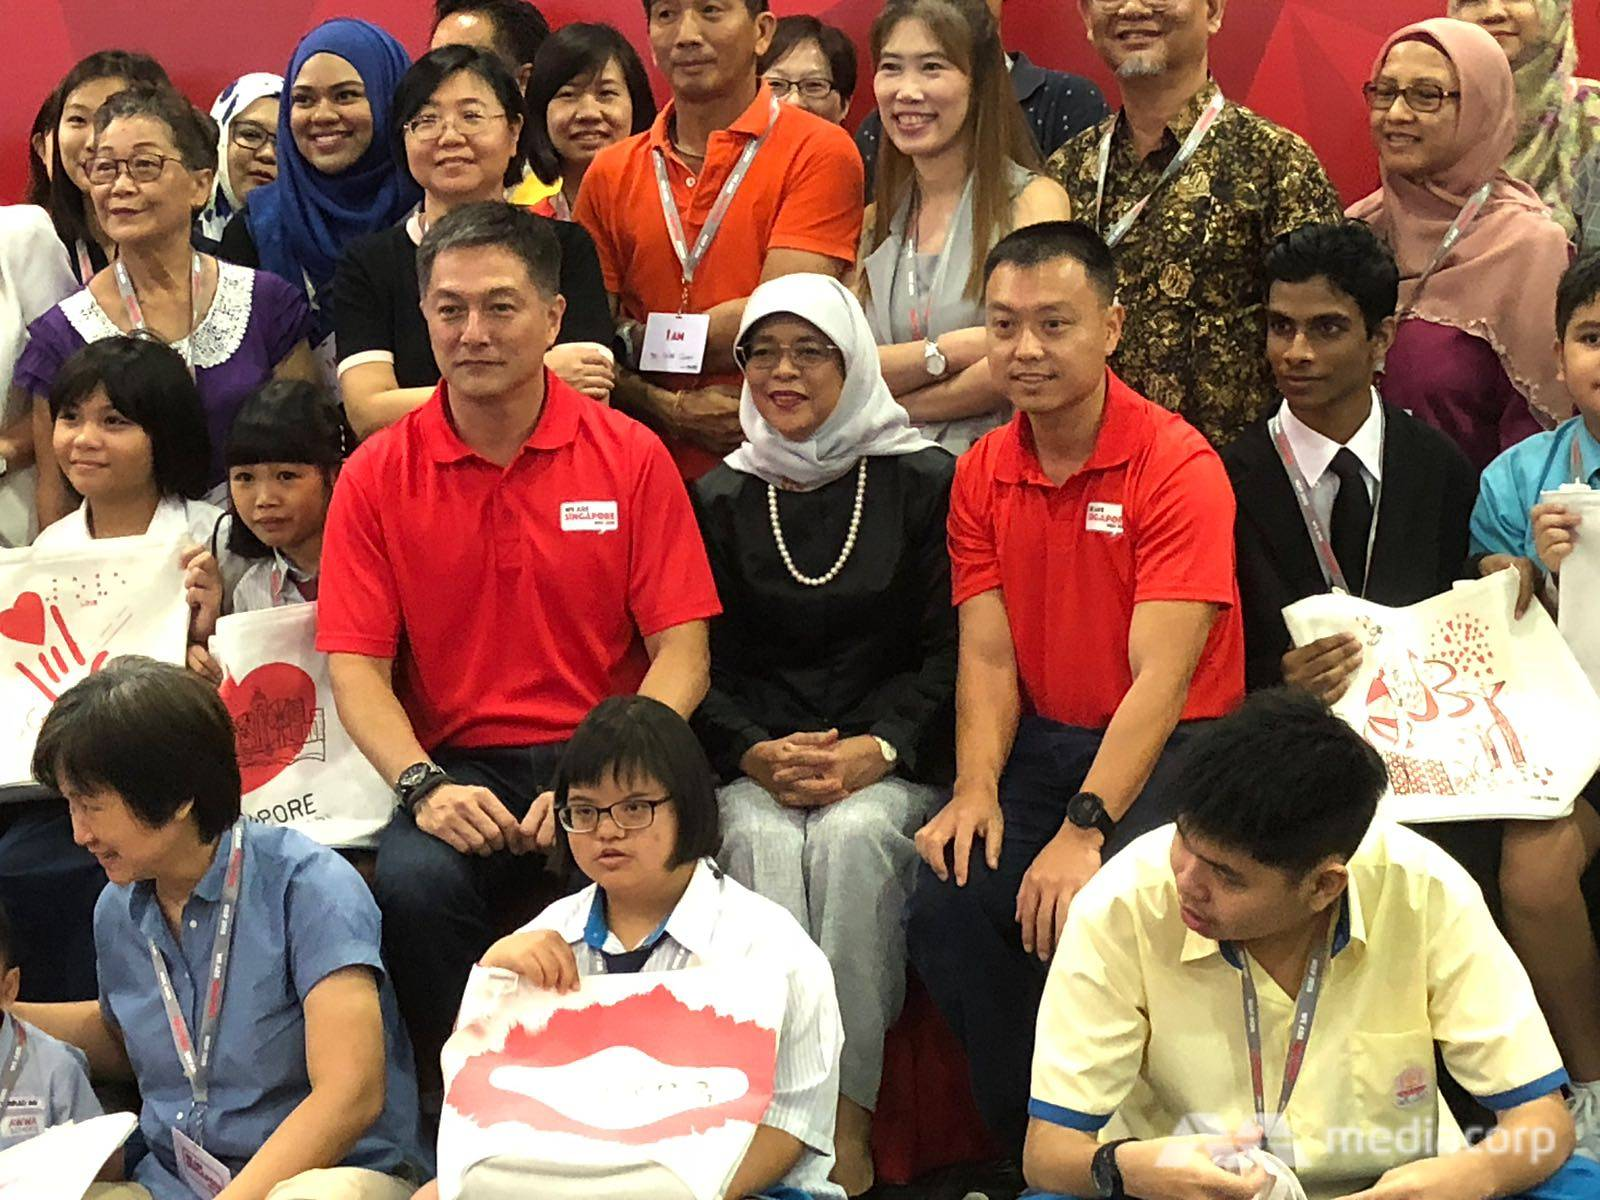 halimah-with-student-artists-and-caregivers.jpg